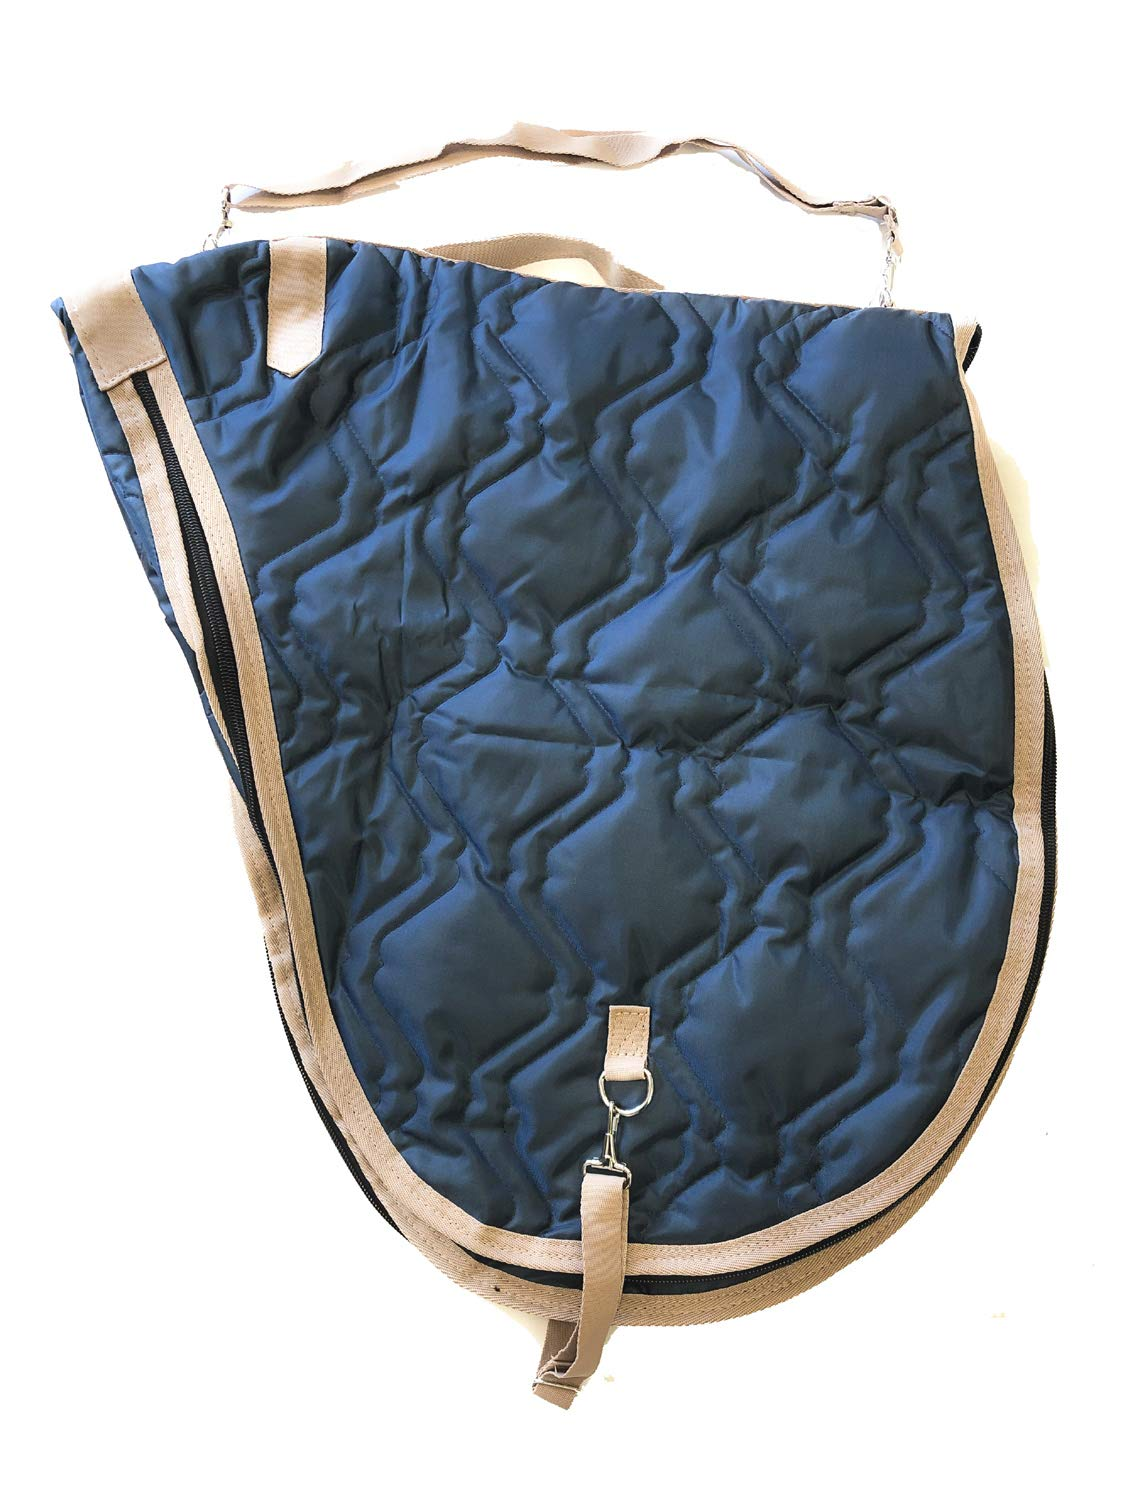 AJ Tack All Purpose English Horse Saddle Carrier Cover Travel Case Bag Padded Navy Blue by AJ Tack